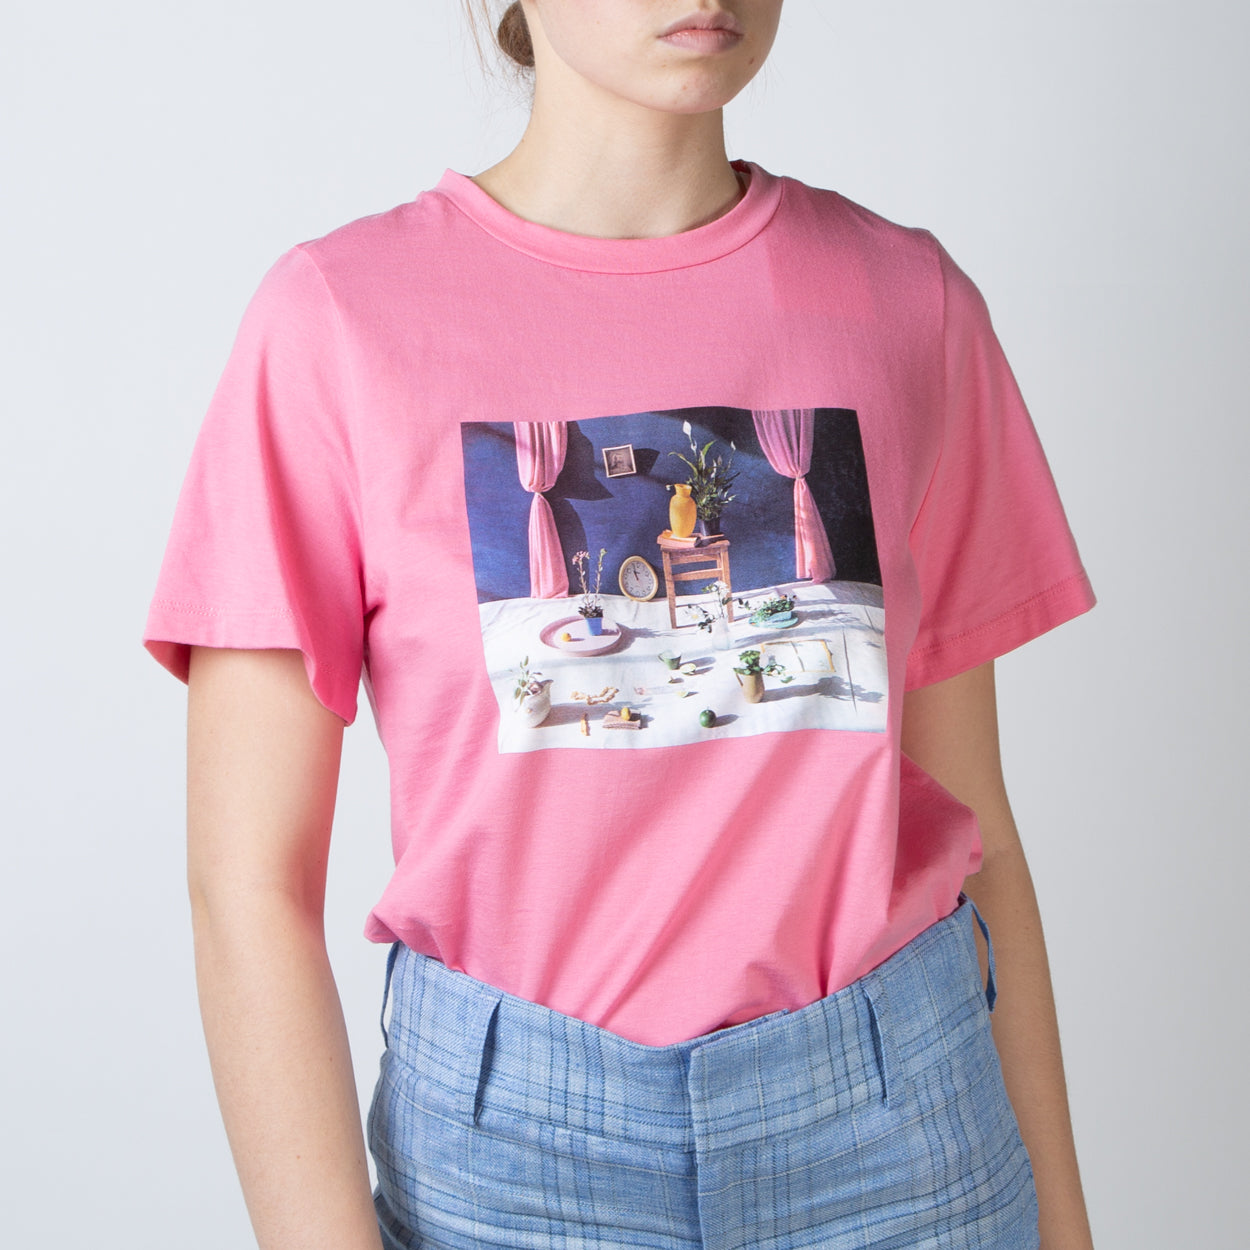 Billie T-Shirt, guava pink